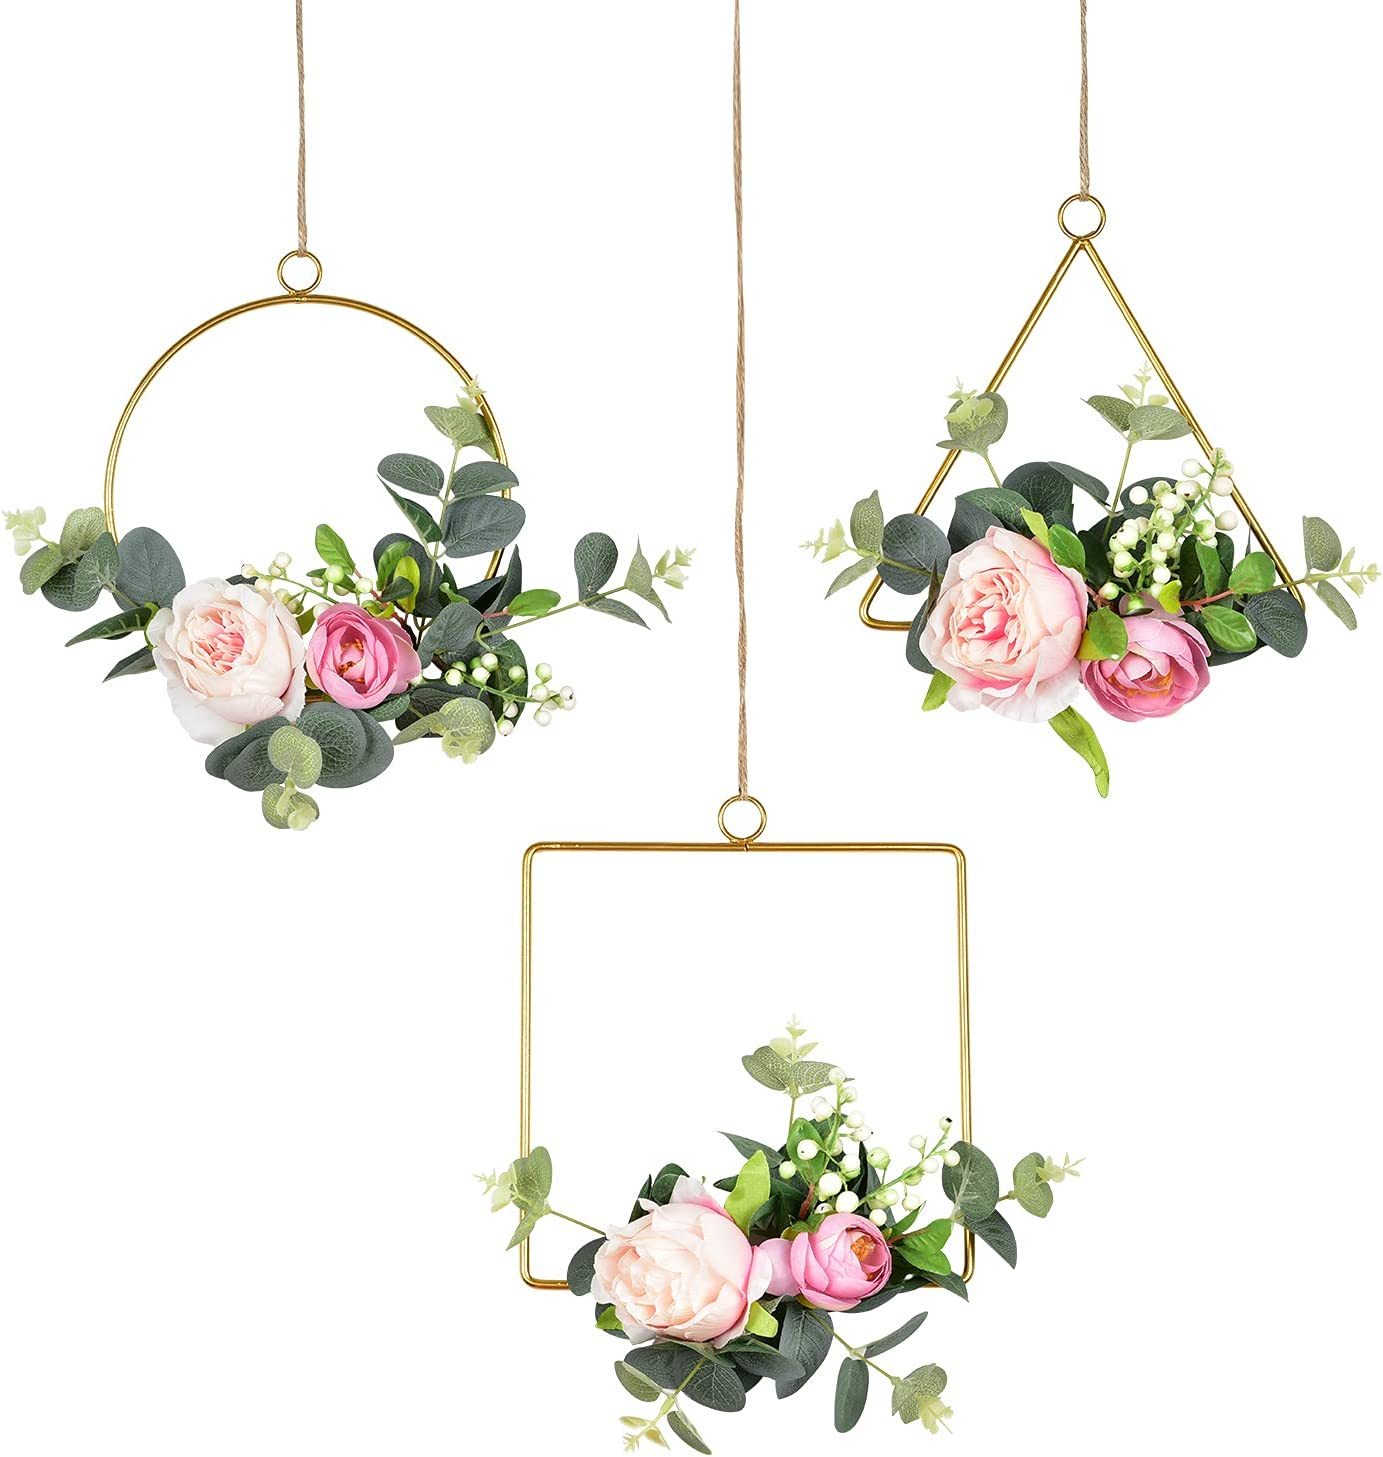 Lvydec Artificial Flower Hoop Wreath, Set of 3 Hanging Floral Wall Decor with Silk Roses and Eucalypts Leaves for Wedding Party Nursery Wall Home Decoration